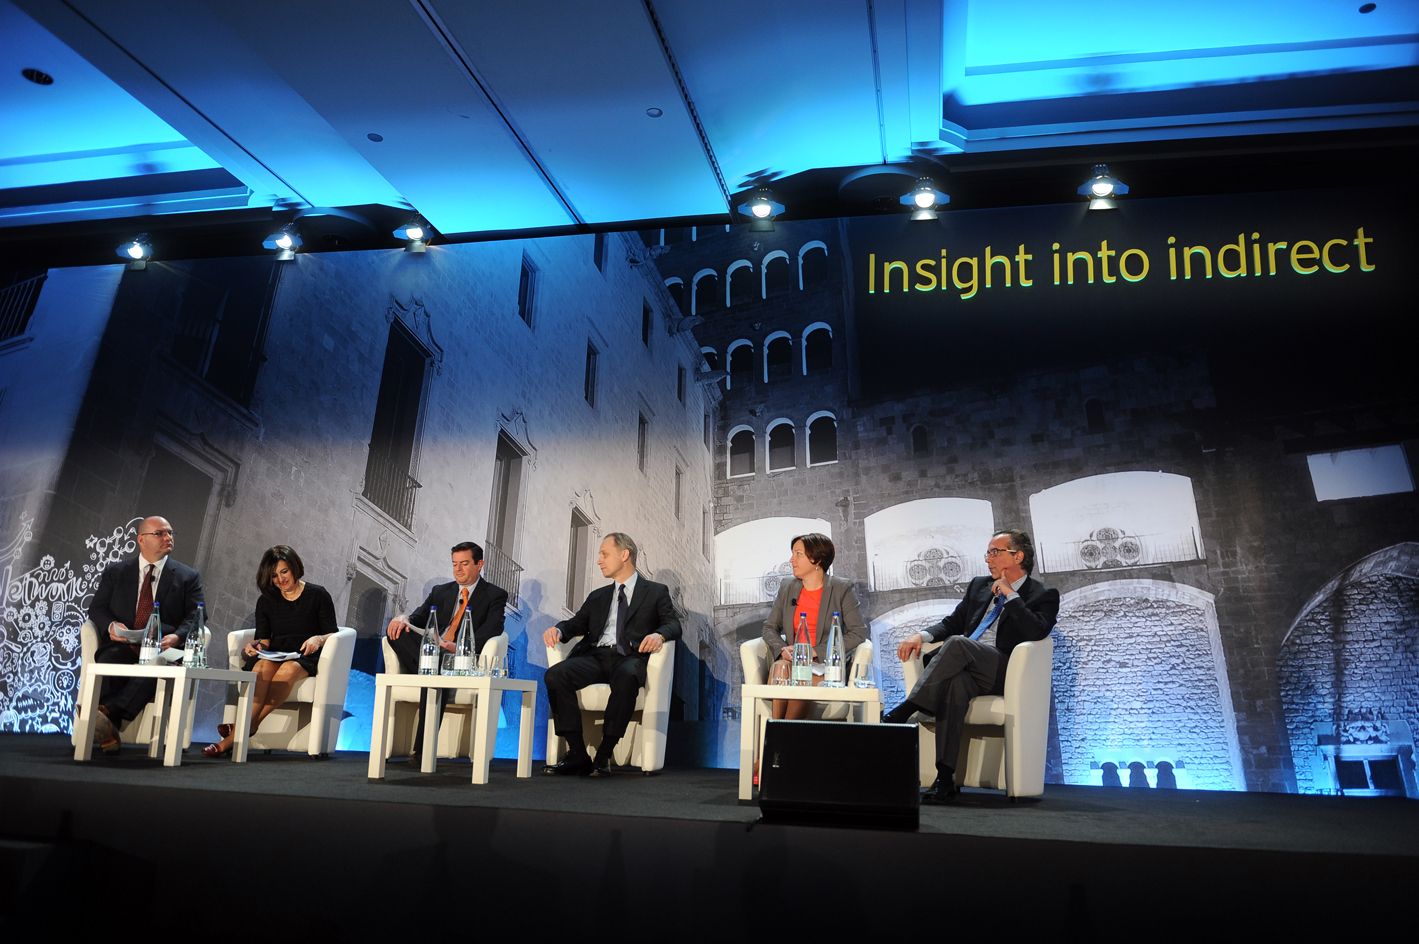 EY 'Insight into indirect' stage set, Barcelona 2015